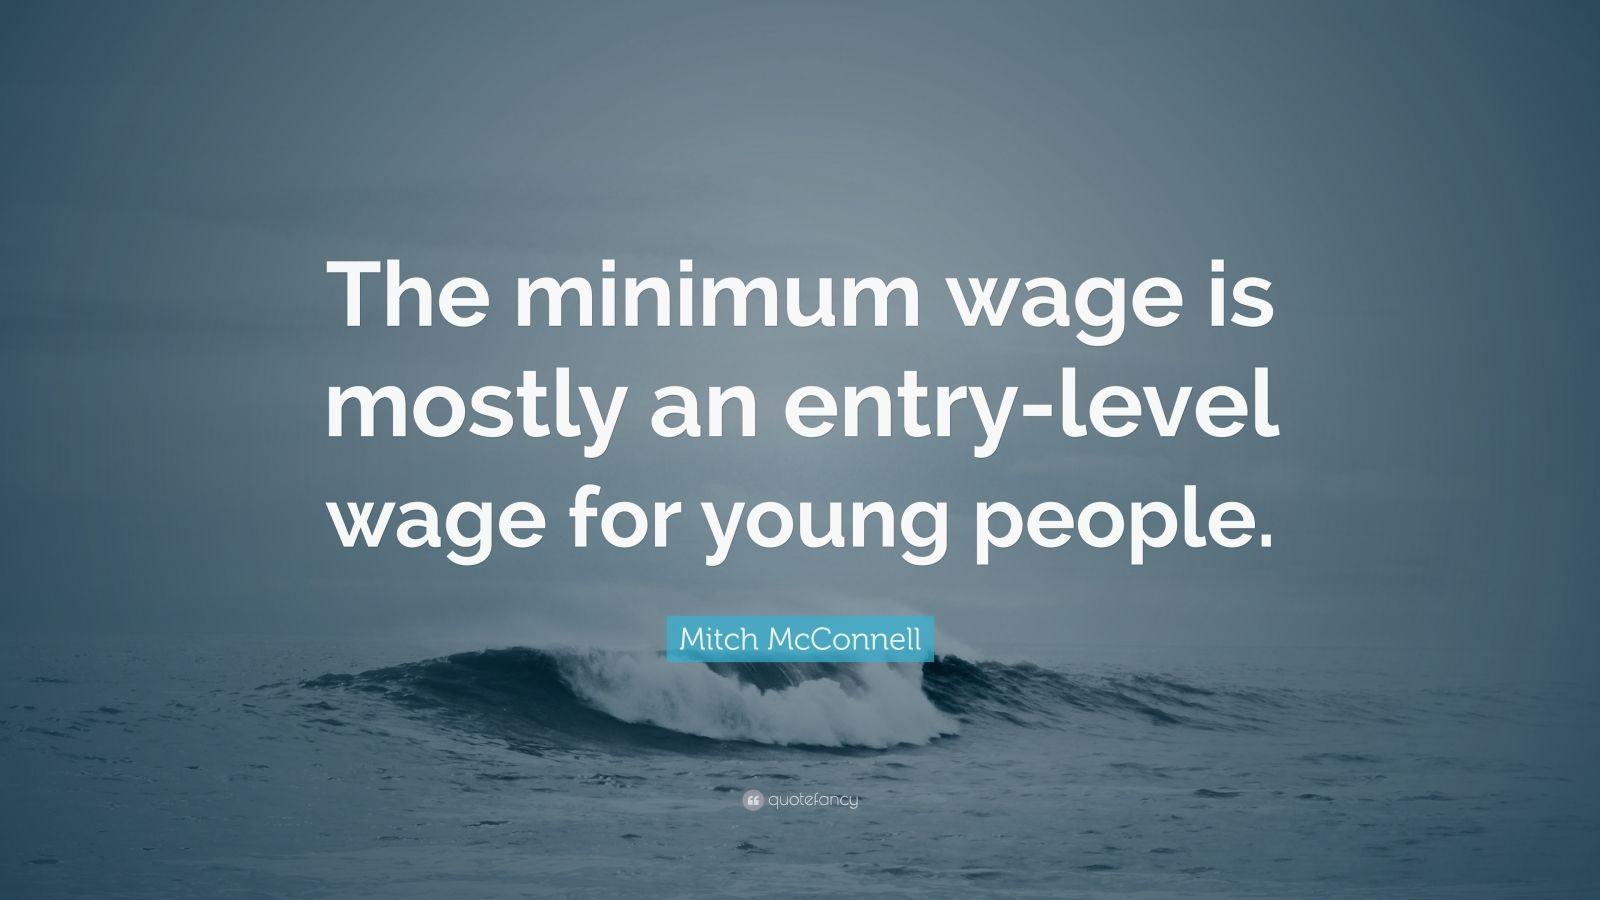 an overview of the minimum wage not being sufficient to live life comfortably Where a minimum wage earner could live comfortably in 86% of counties surveyed, even those who earned twice the minimum wage still did not earn enough money to pay rent and other basic needs.